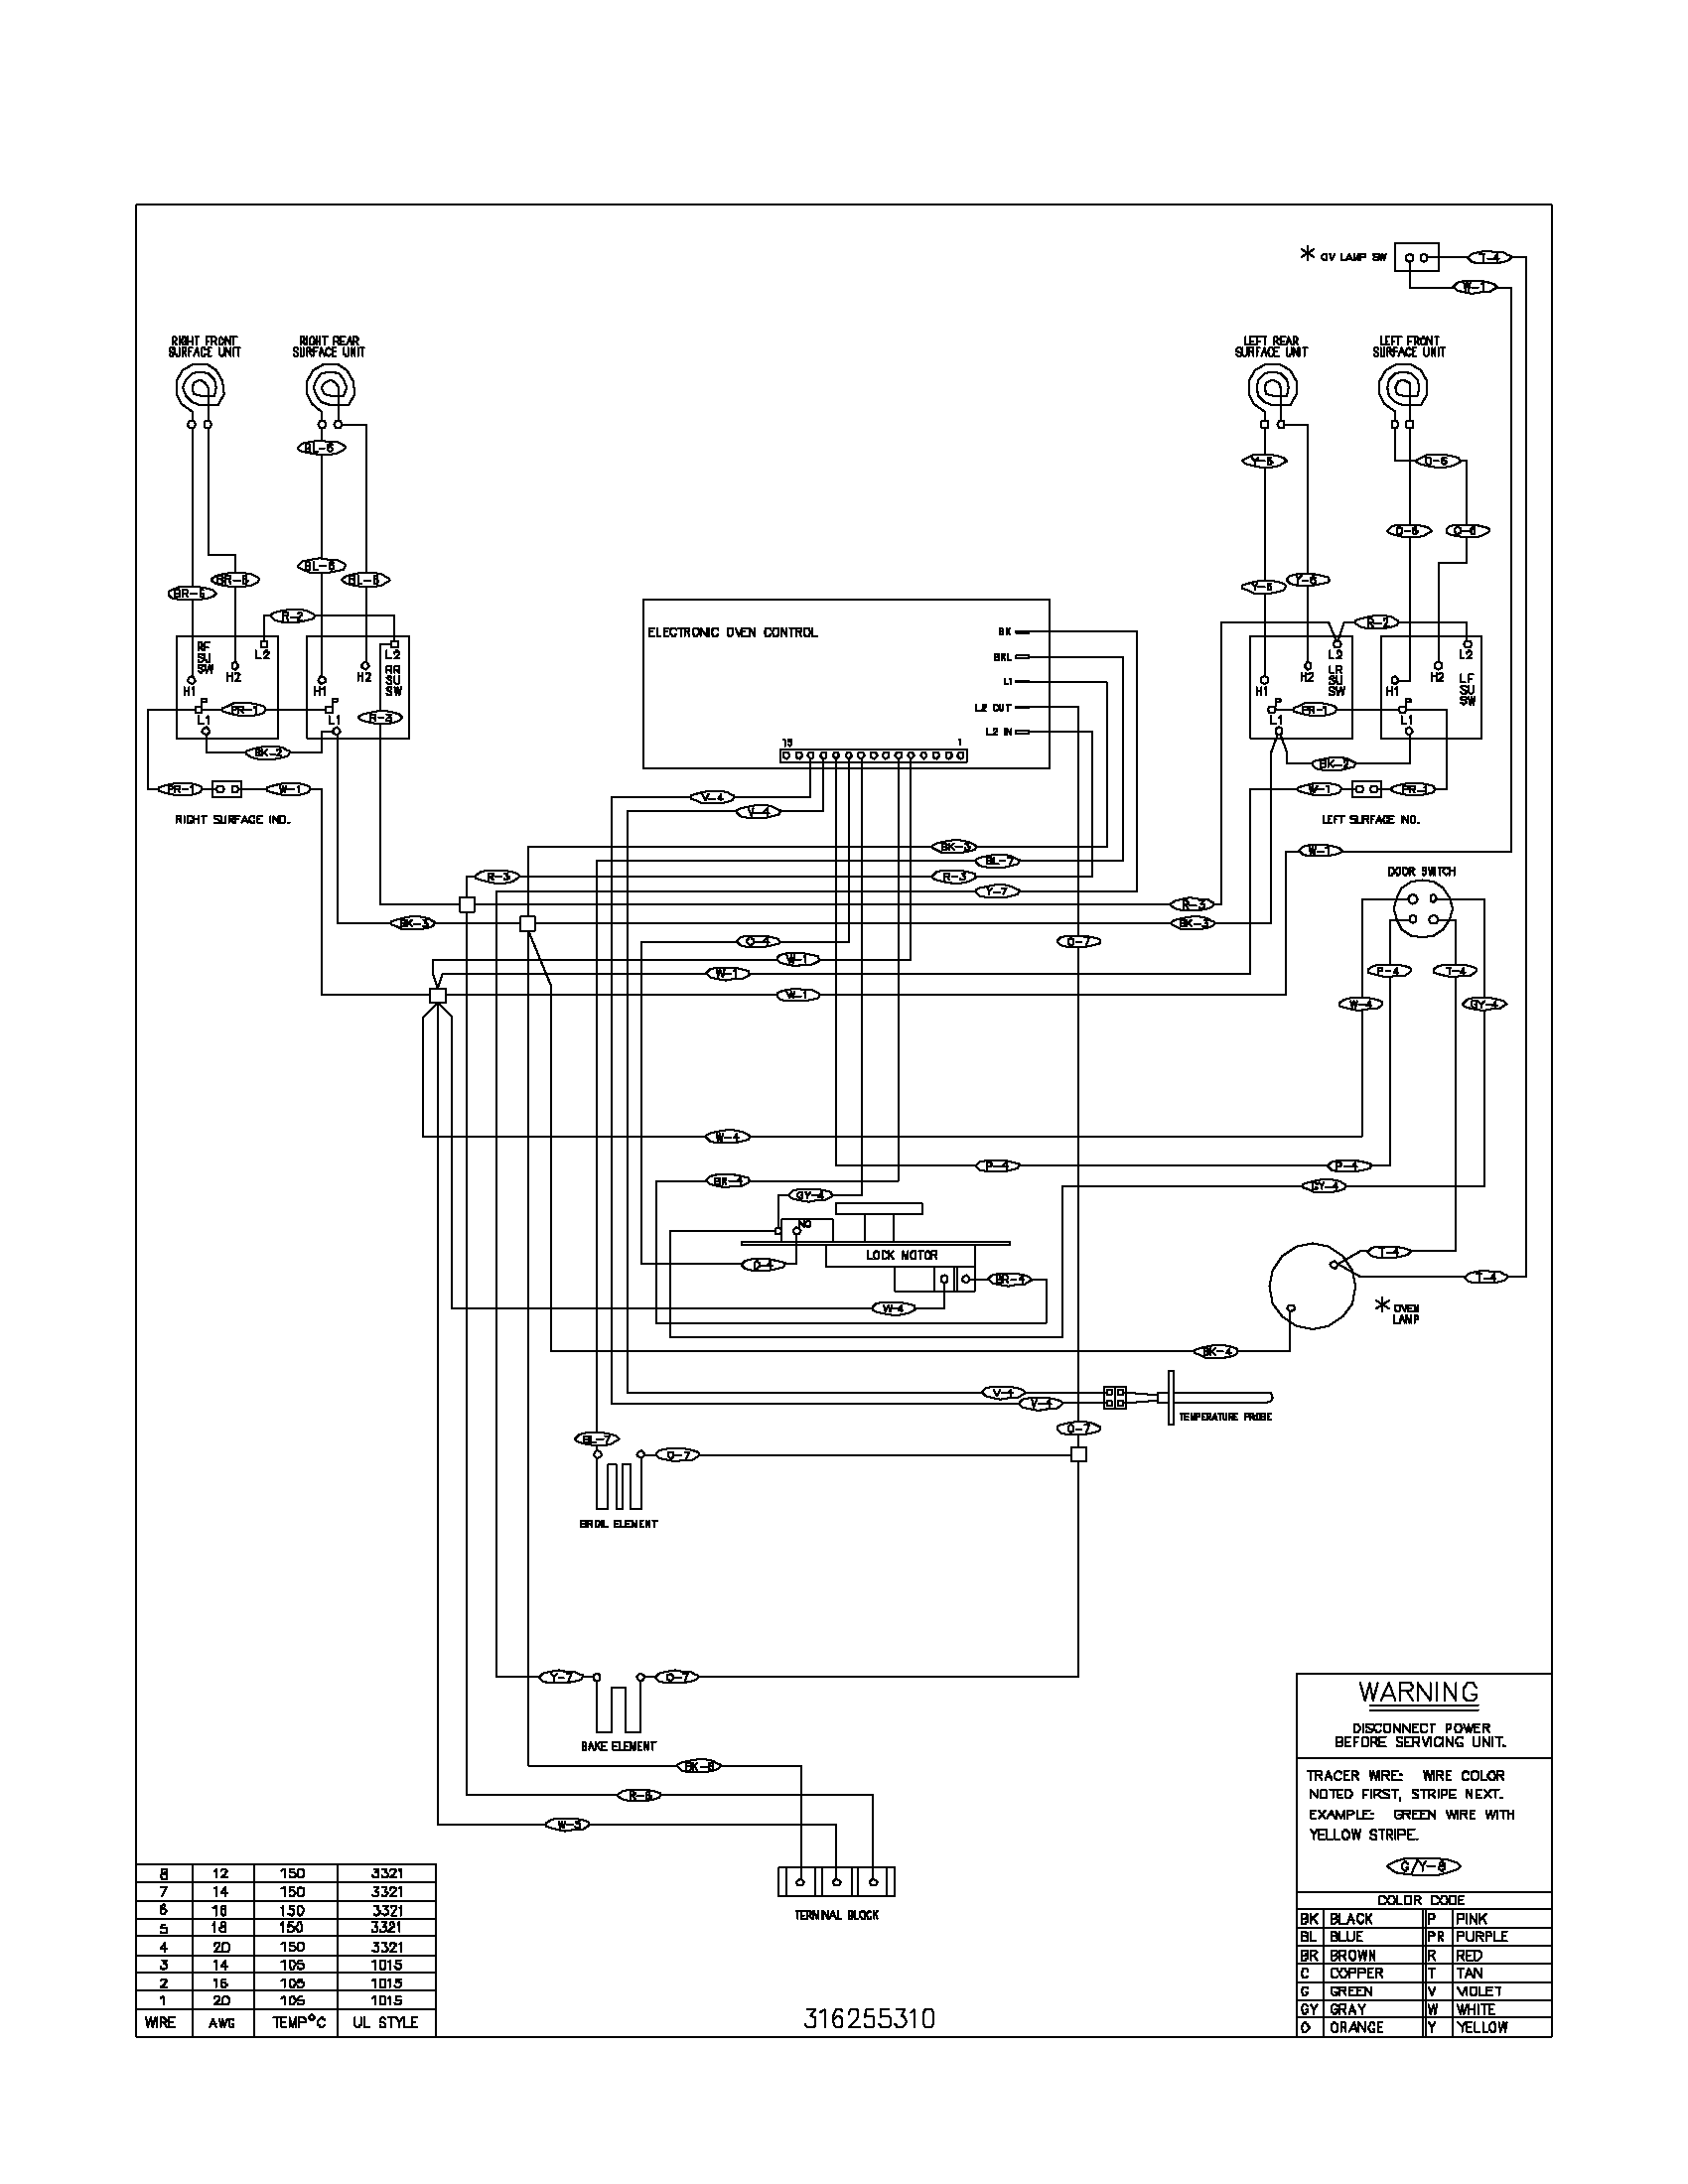 wiring diagram parts frigidaire dryer wiring diagram conair hair dryer wiring diagram frigidaire wiring diagram at honlapkeszites.co